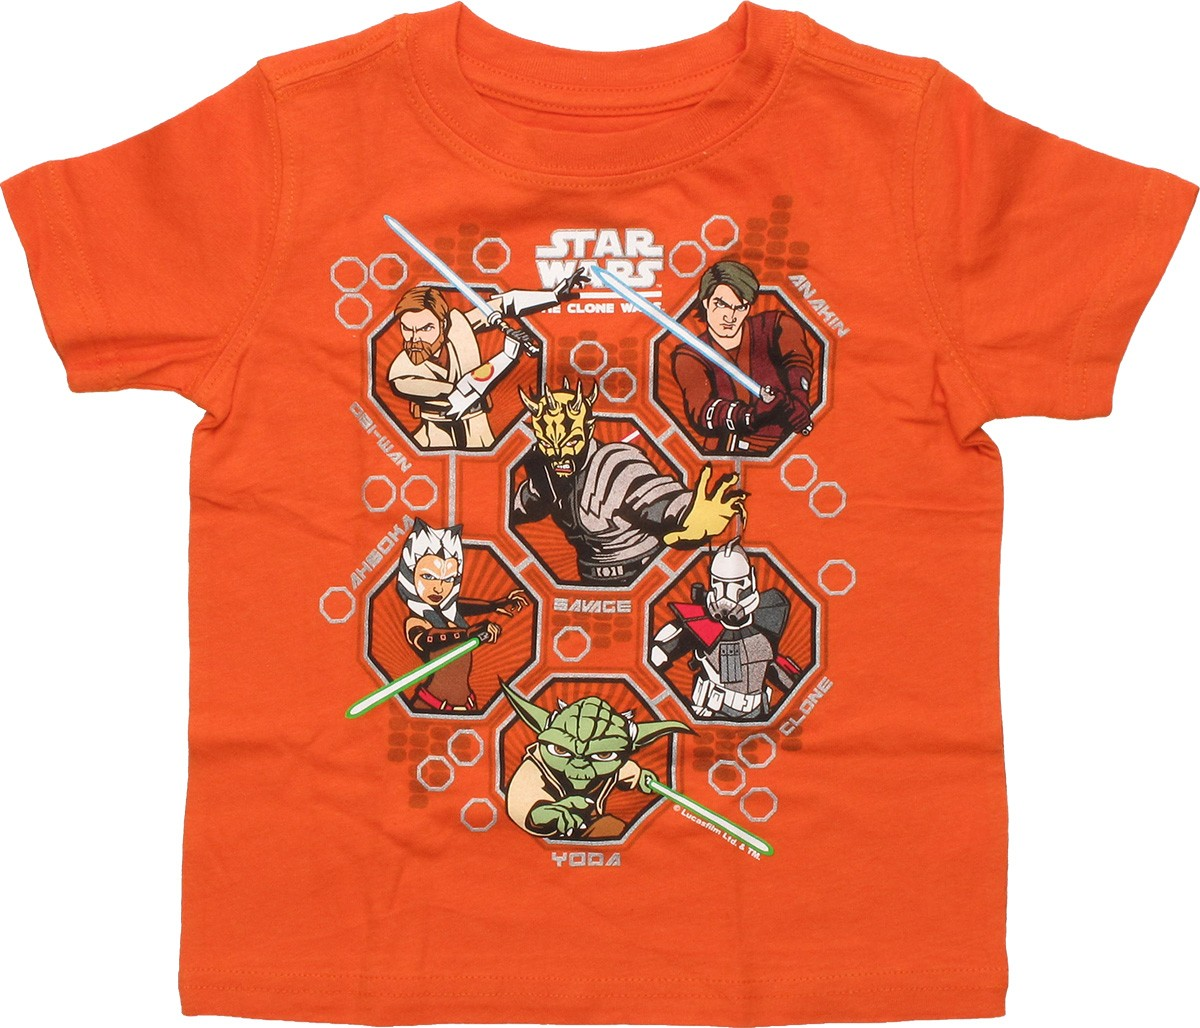 Find a universe of Jedi approved clothes, collectibles, toys and more in the Star Wars shop at shopDisney. Skip Navigation. Clear. Guest Services Disney® Visa® Card Star Wars T-Shirts & Tops Star Wars Classic Sticker Death Star. Star Wars: Force and .